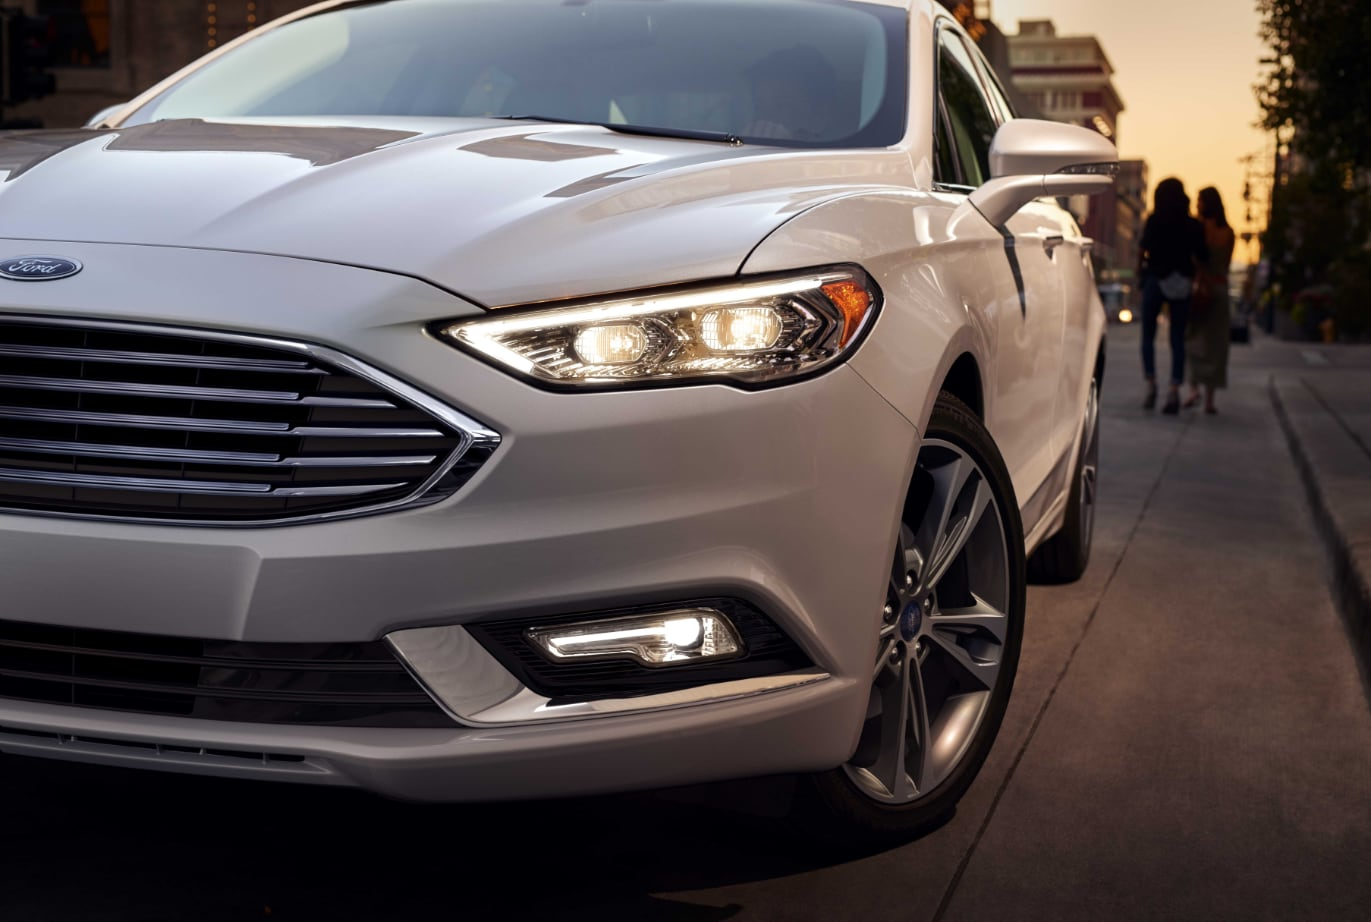 2017 ford fusion highlights and features san bernardino, ca ford